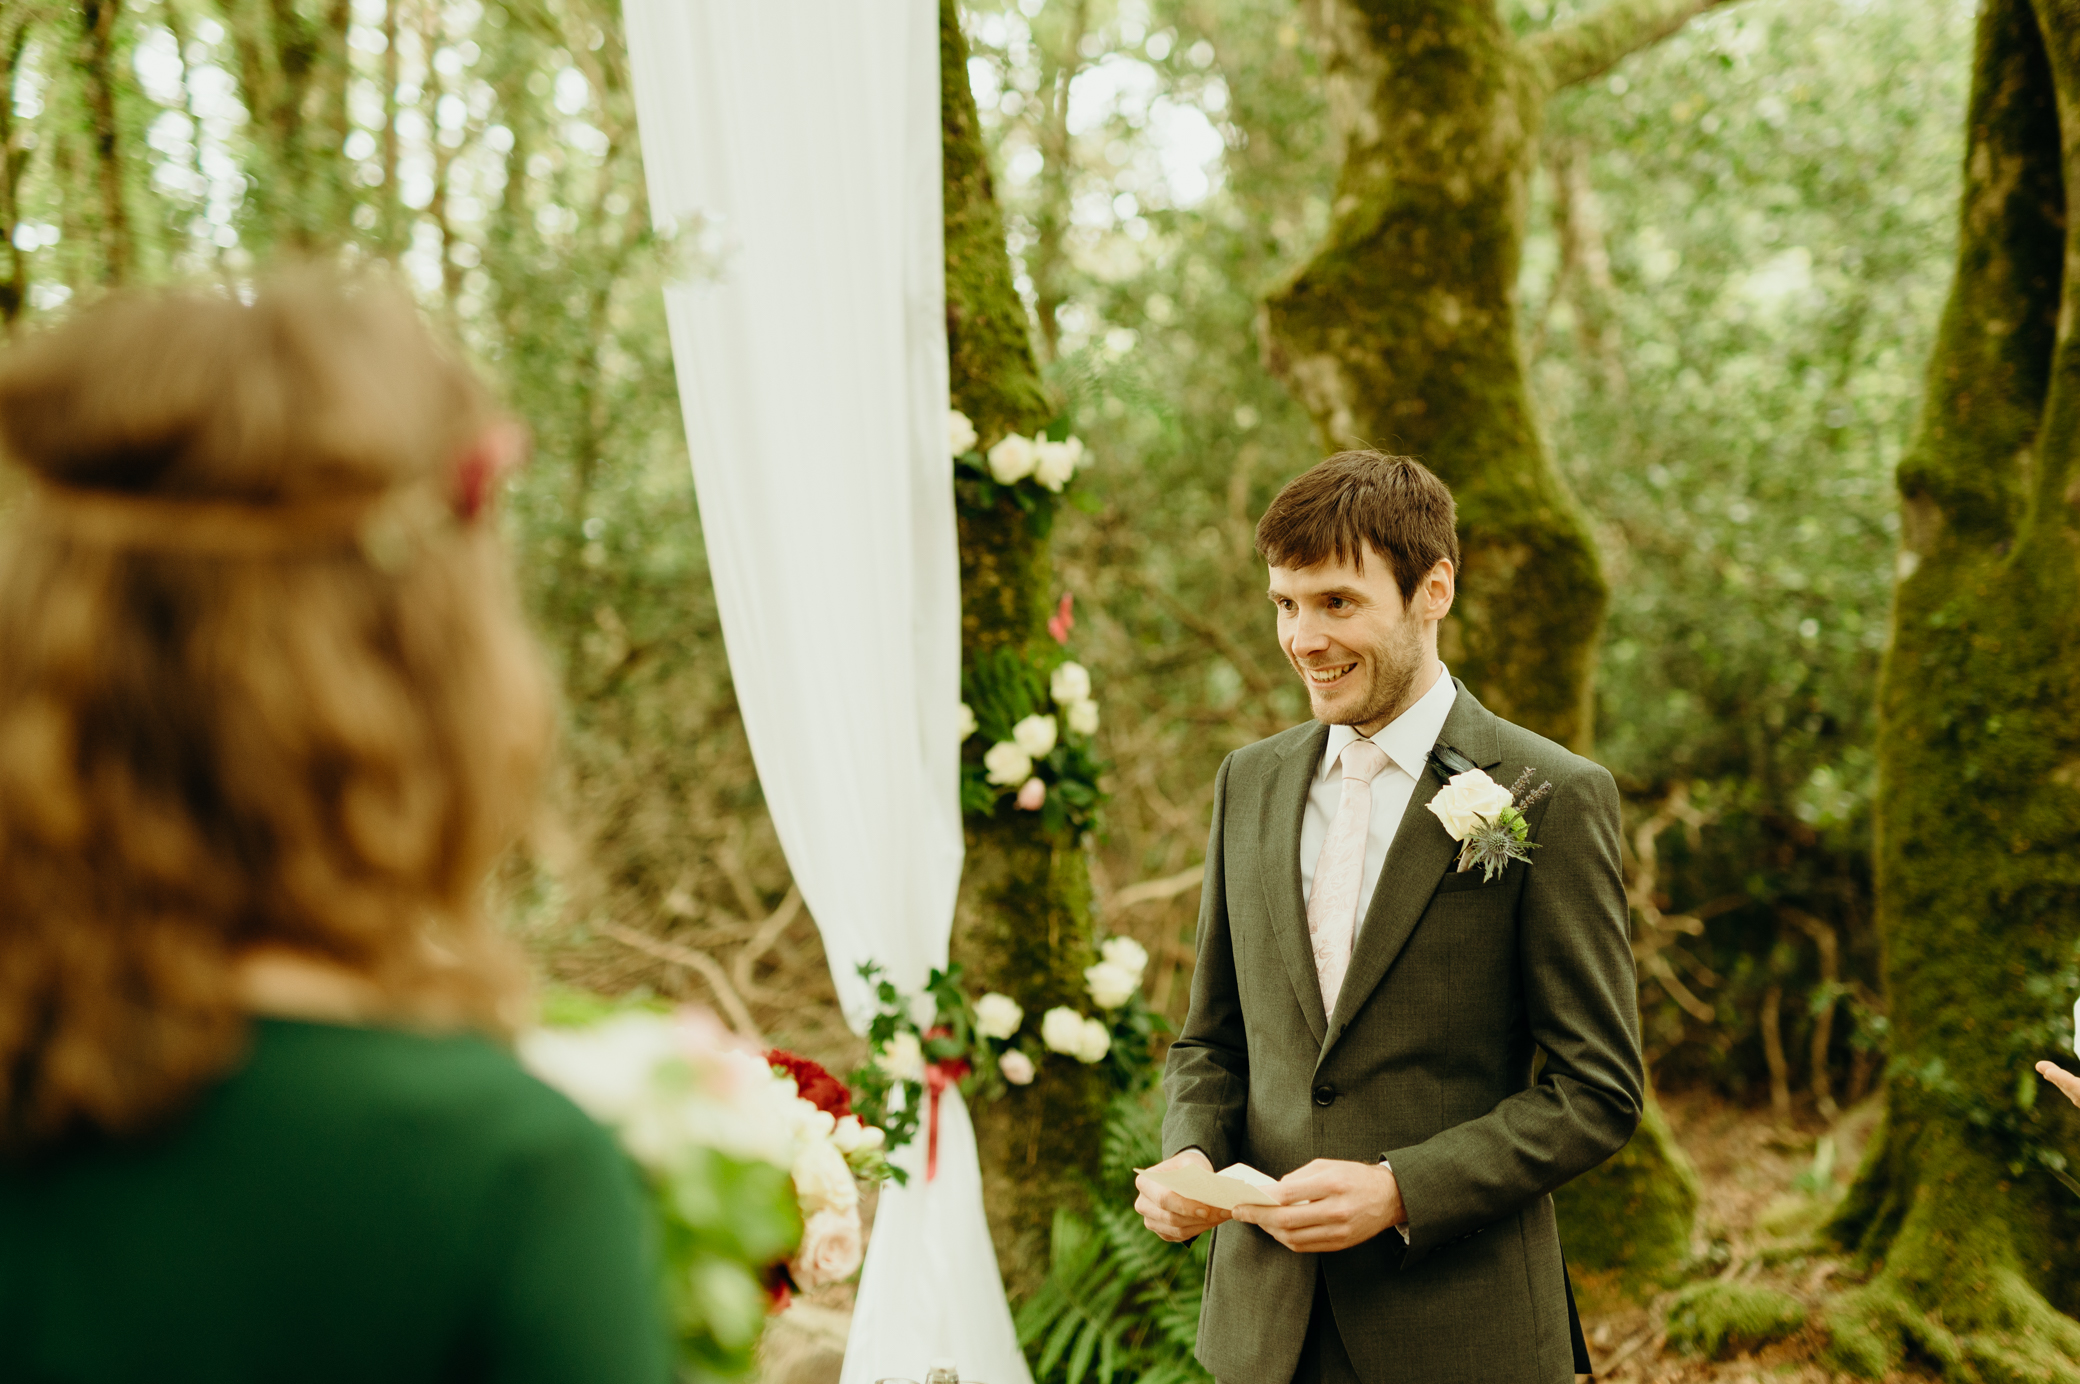 Alternative Wedding Ireland - Elopement photographer Ireland - Destination Photographer Europe-53.jpg